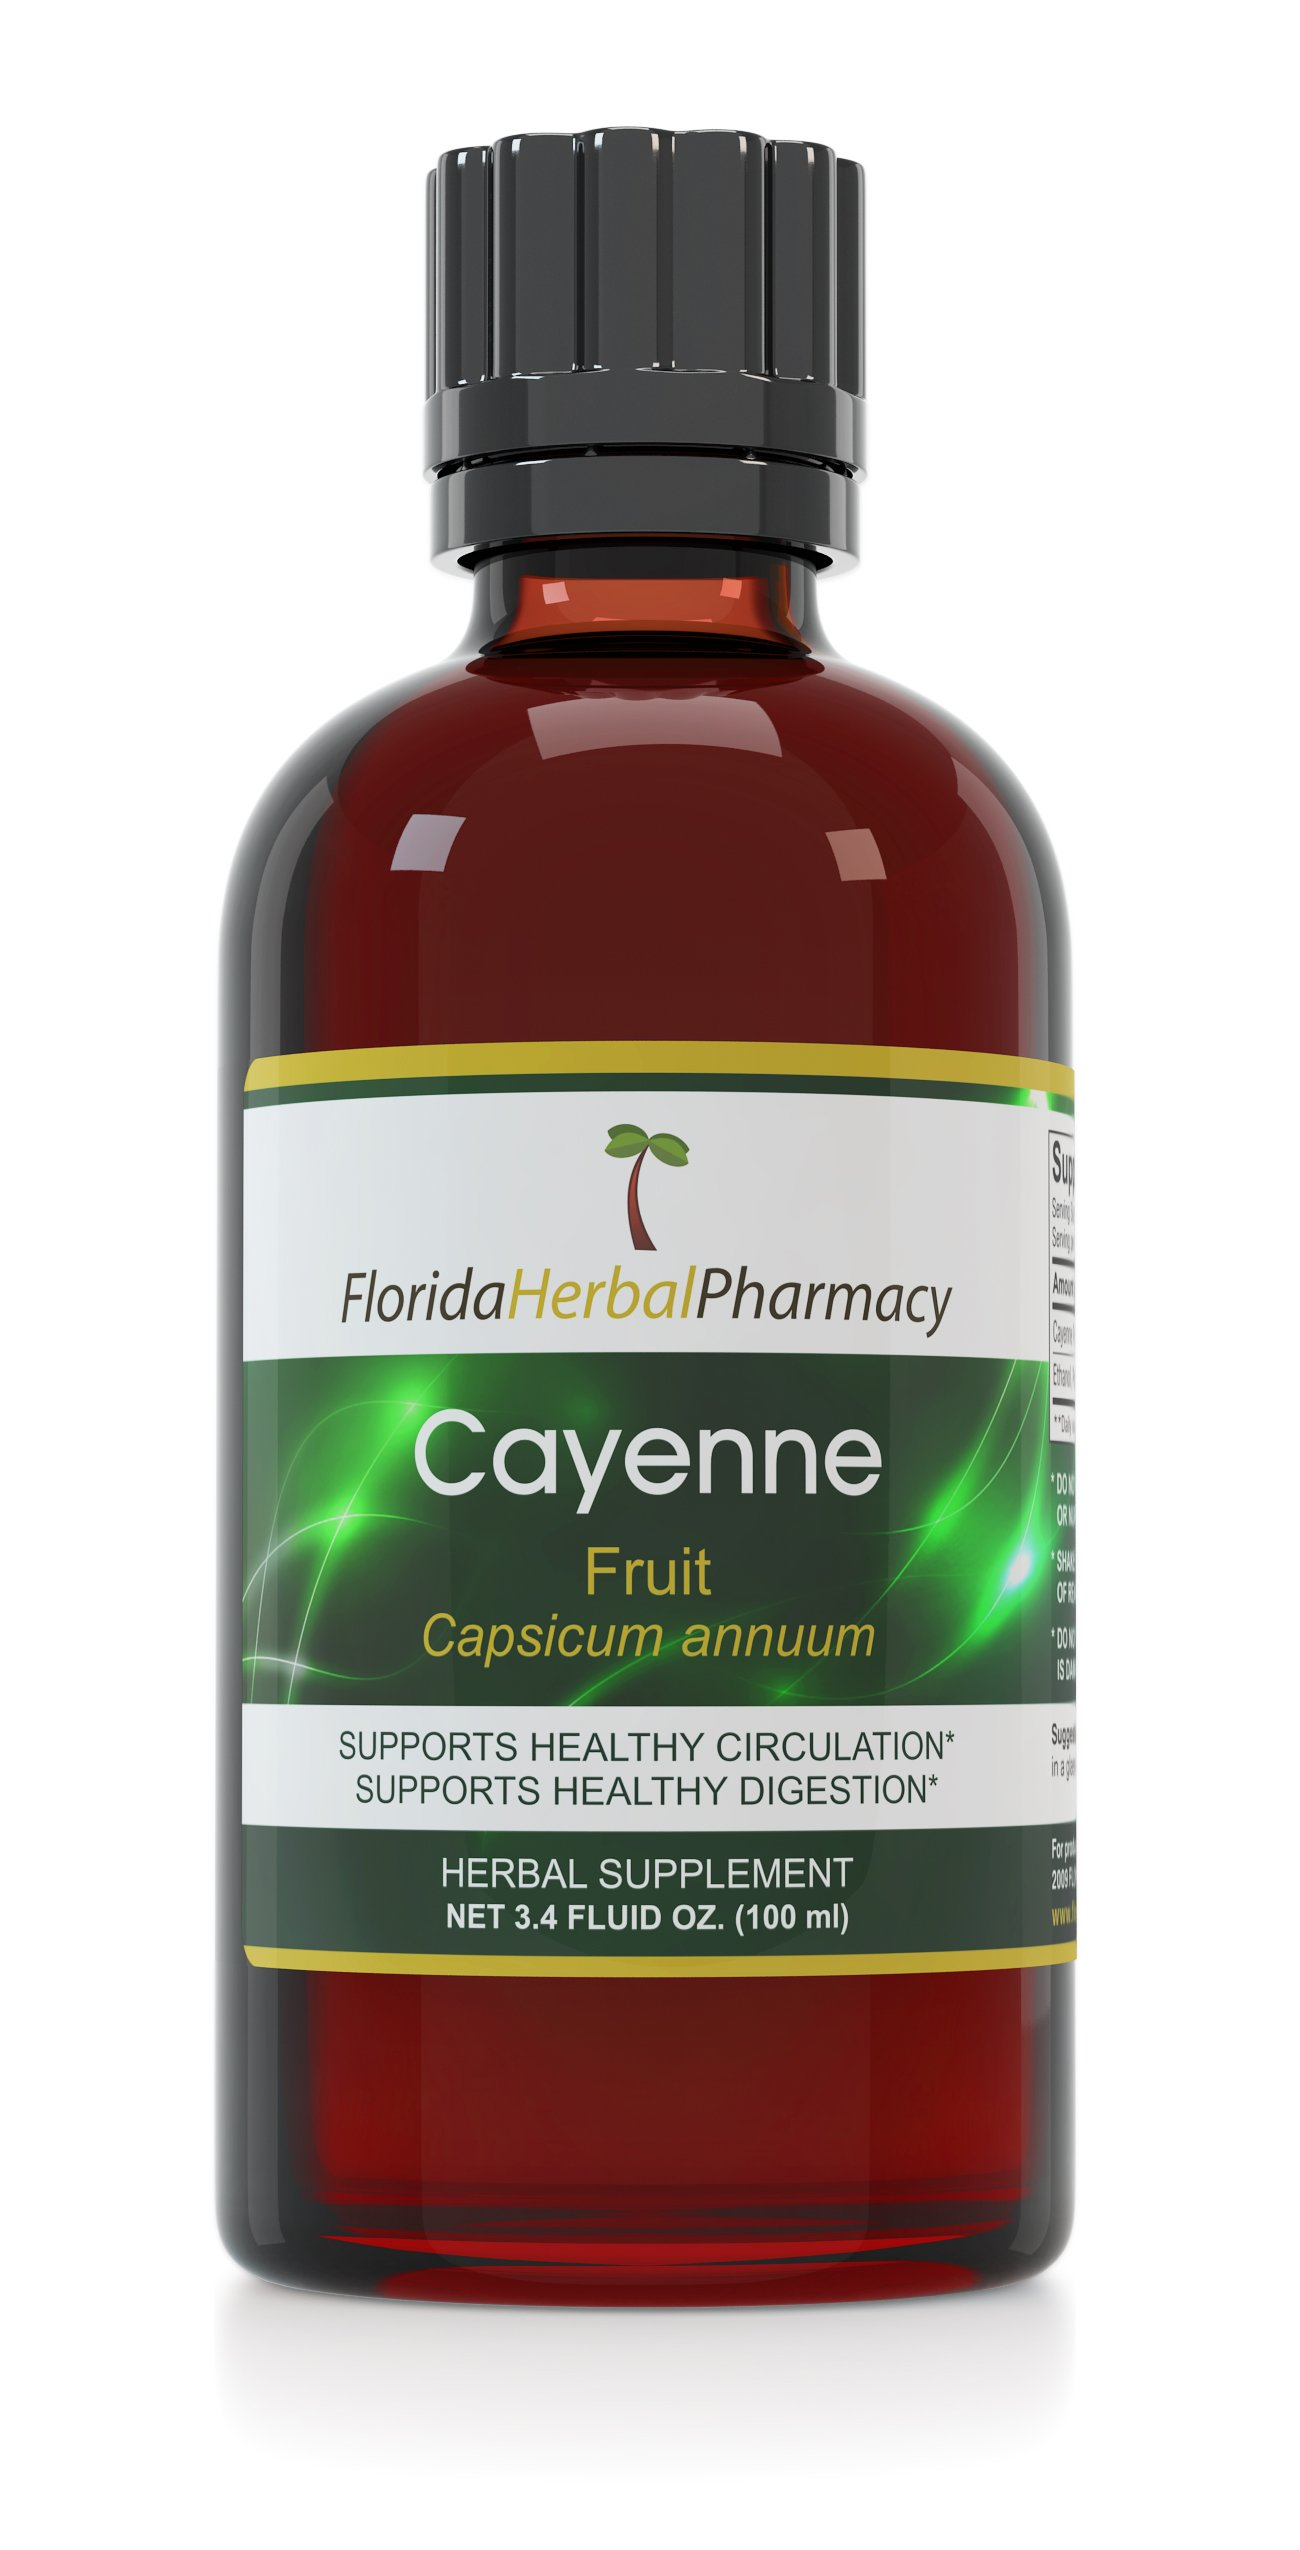 Florida Herbal Pharmacy, Cayenne (Capsicum annuum) Tincture/Extract 3.4 oz. (100 ml) Pack of 3